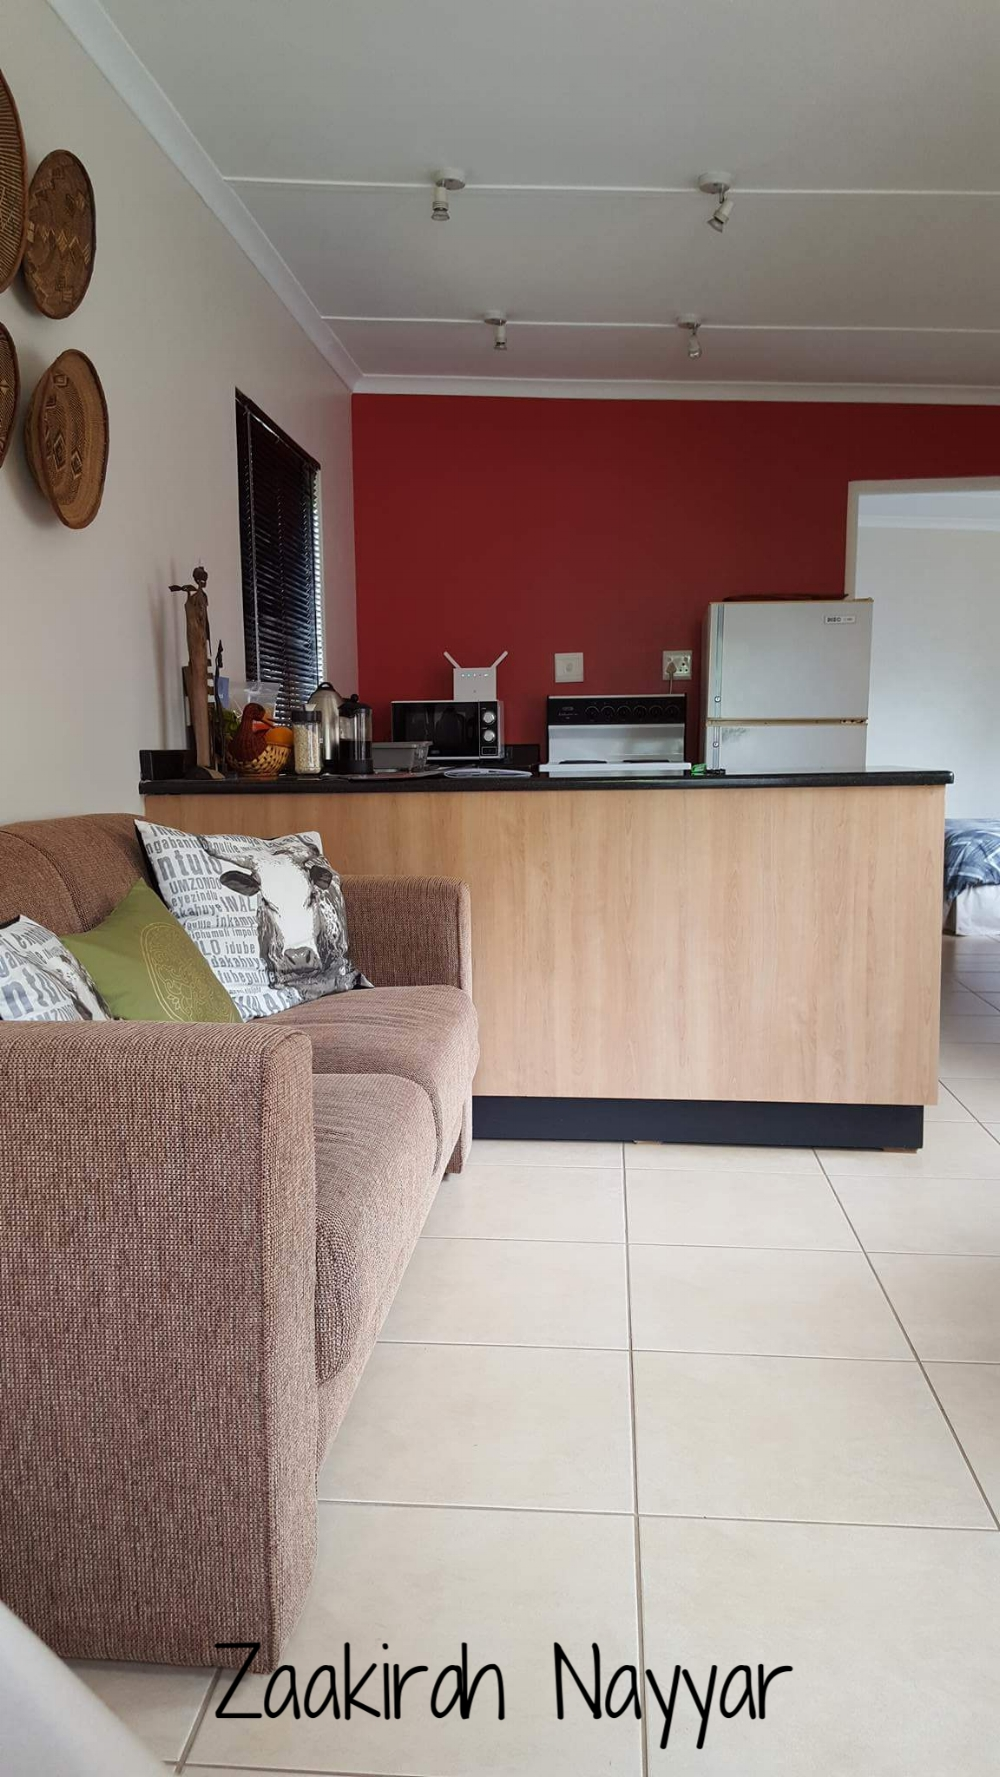 Airbnb Kitchen View | Opposite side of living room area | Zaakirah Nayyar